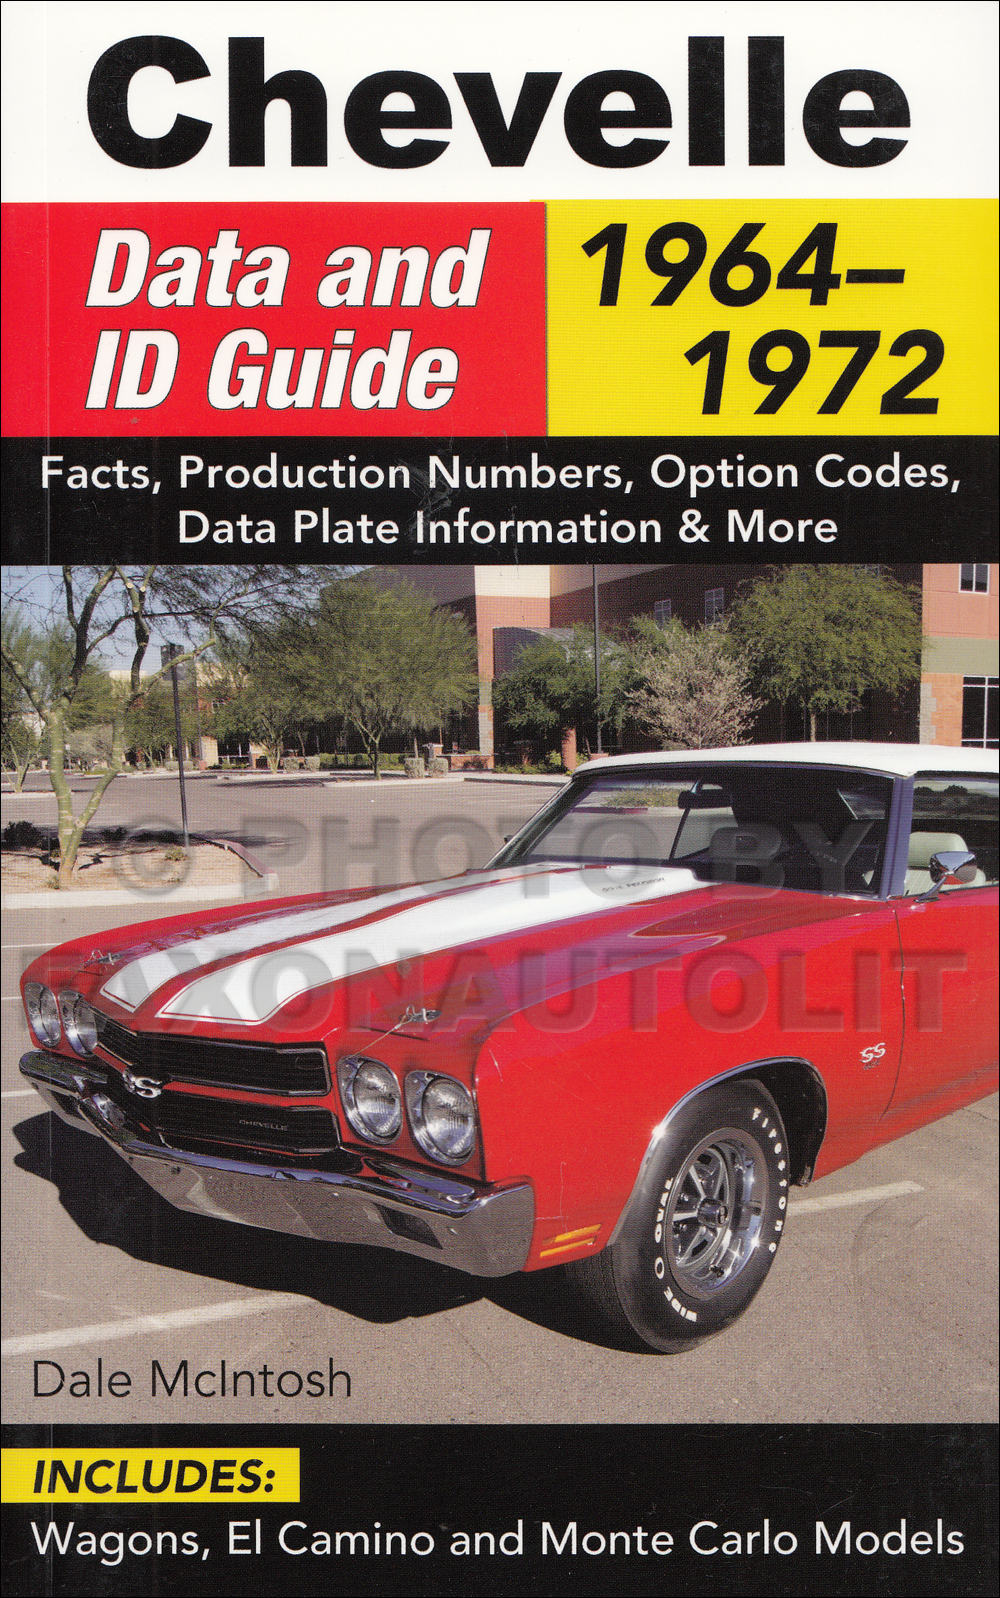 Chevelle Wiring Diagram 1965 Chevelle Wiring Diagram Chevelle Wiring